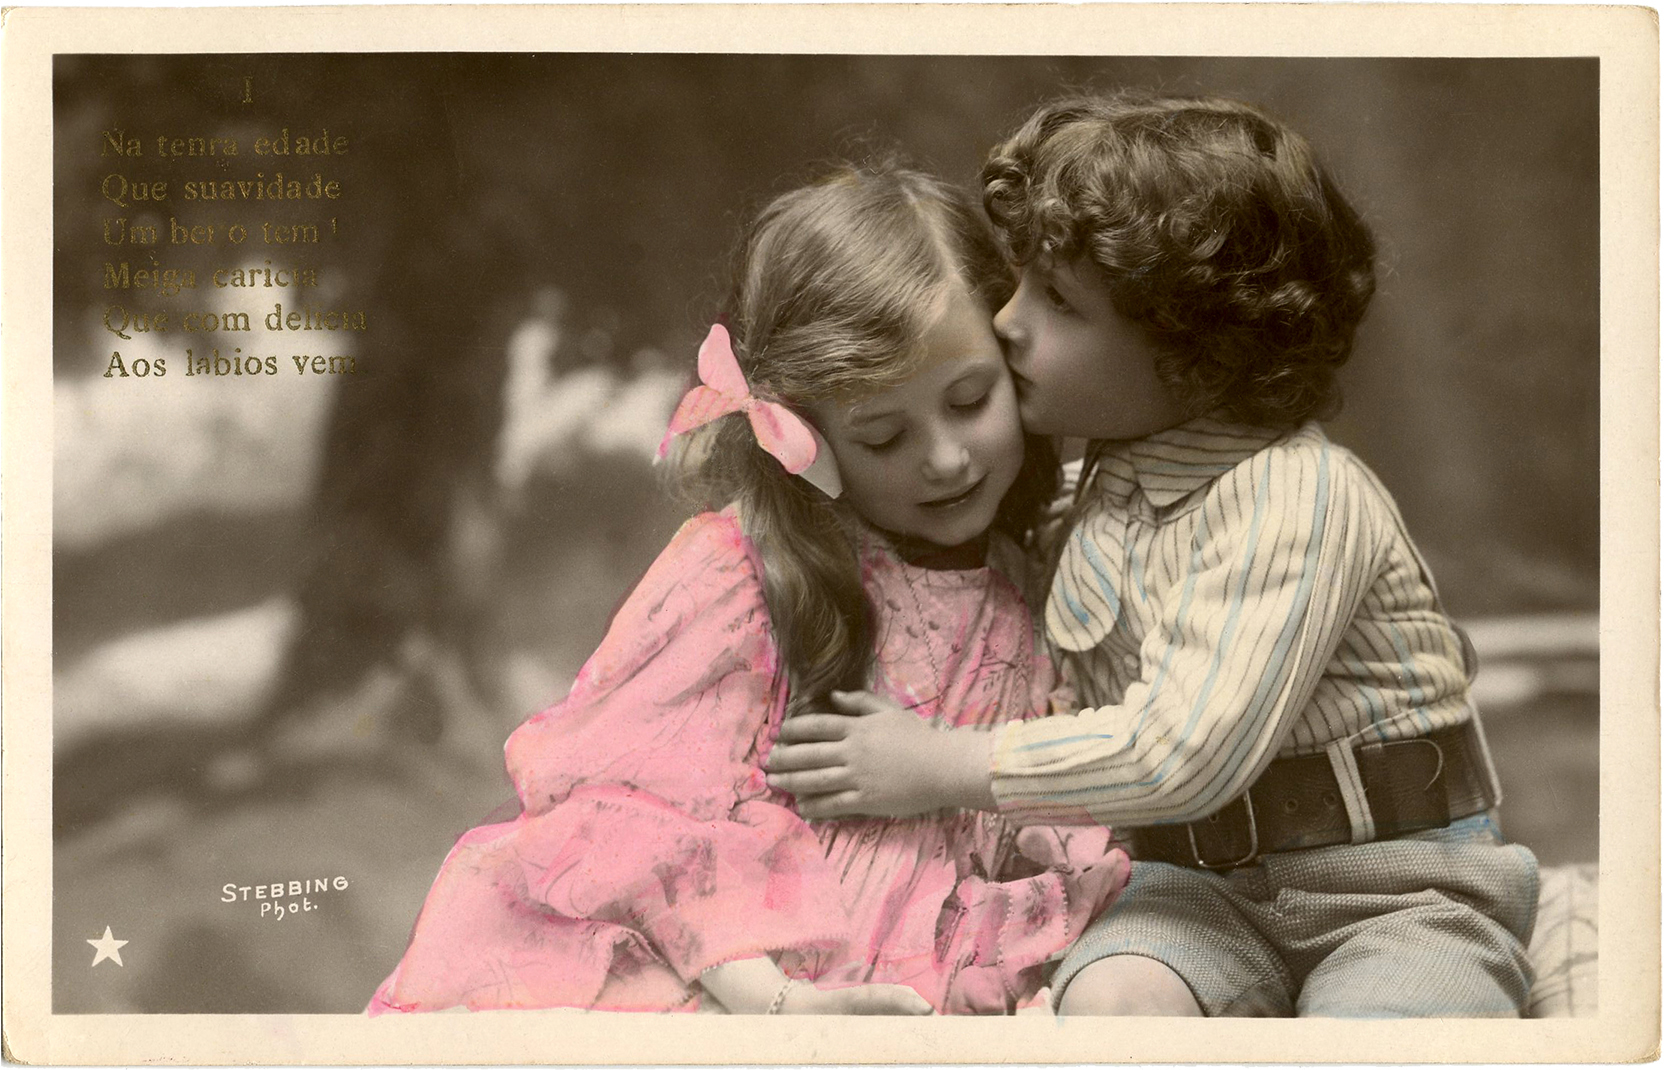 young boy and girl kiss images.